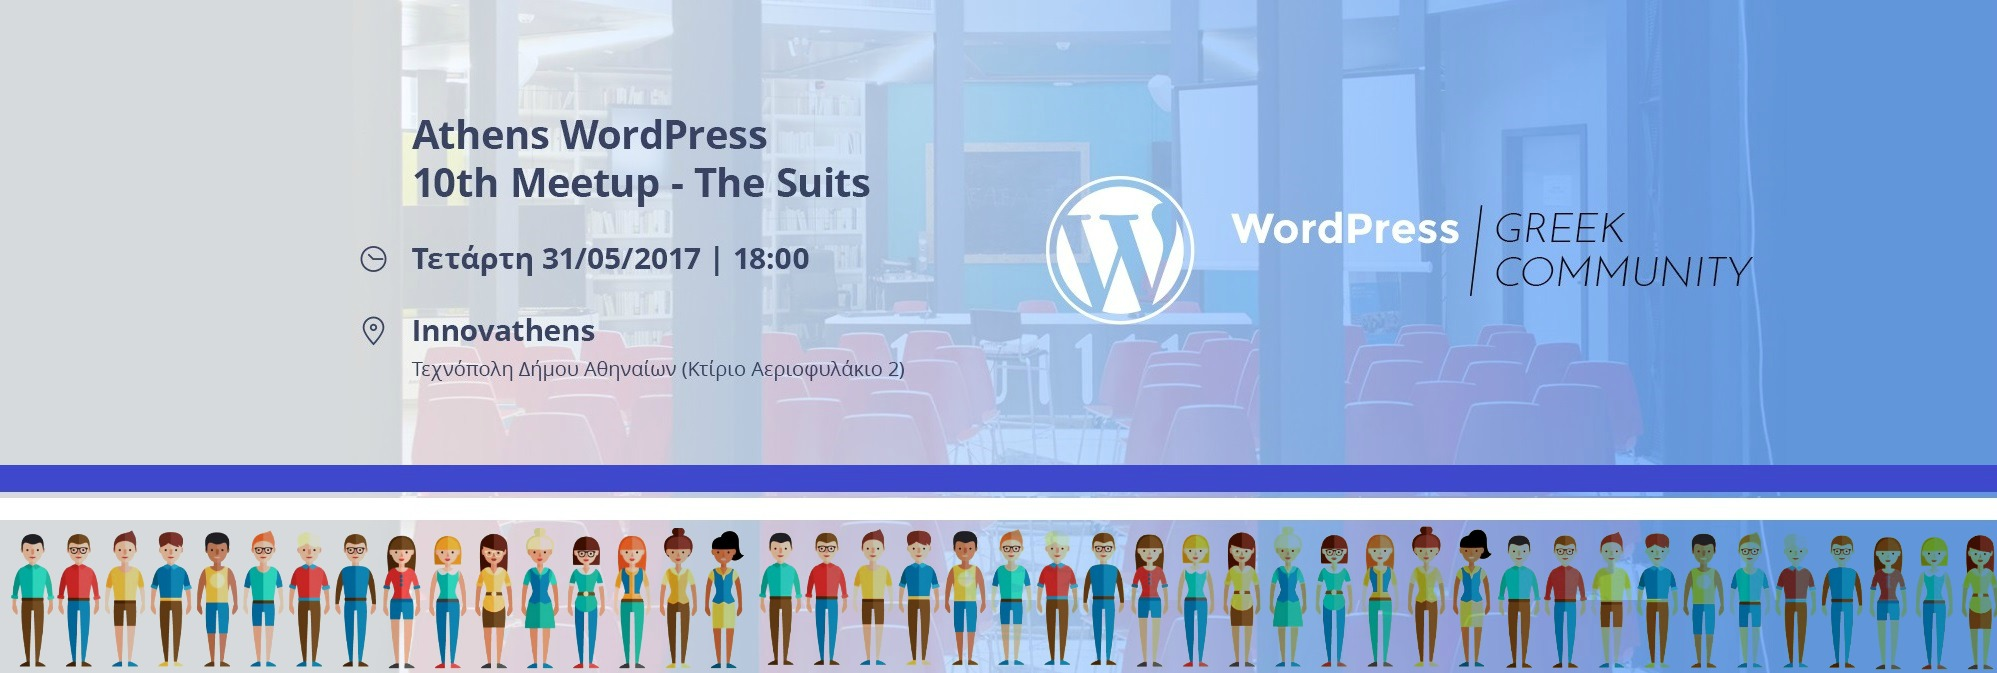 Wordpress Greek Community Meetup 31 May 2017